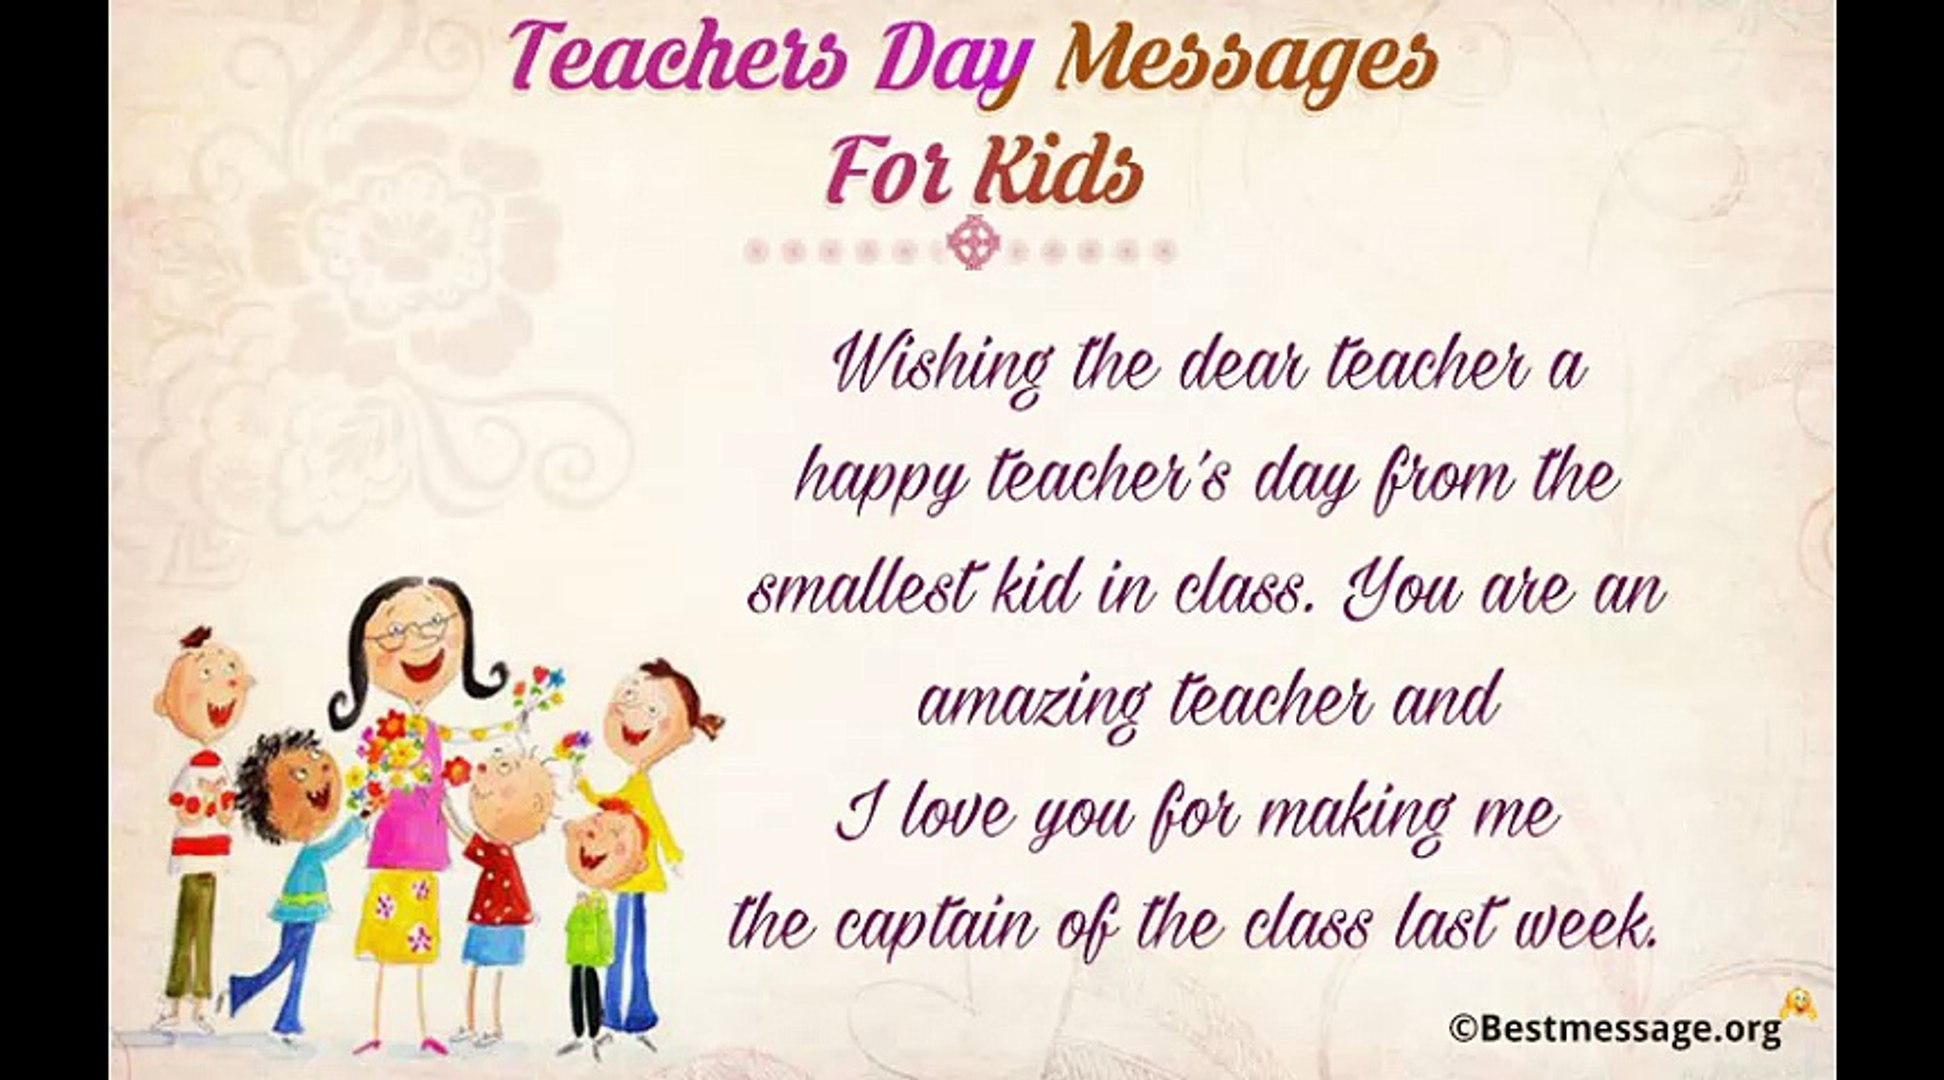 Happy Teachers Day 2016 Quotes | Best Teachers Day Messages, Wishes